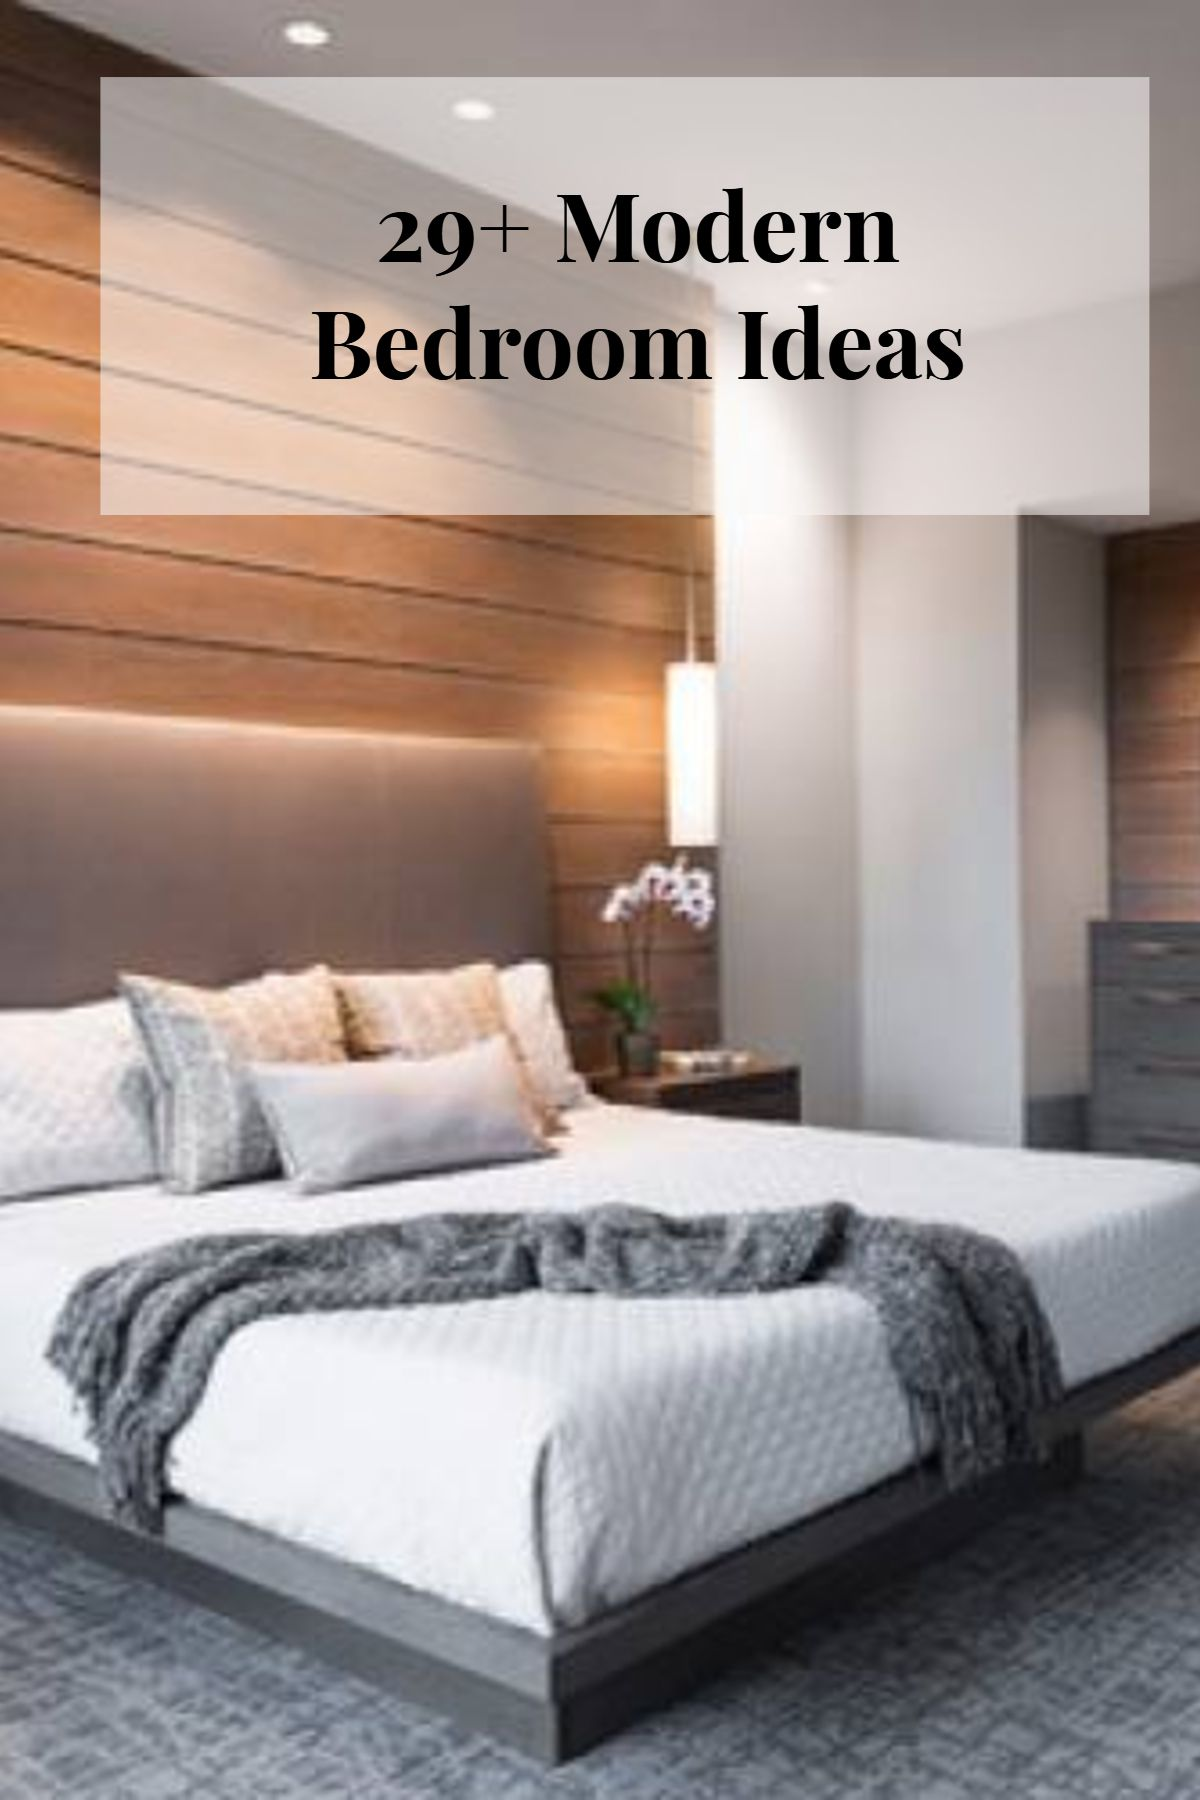 51+ Modern Minimalist Bedroom Decor Ideas | Home decor | Bedroom ...